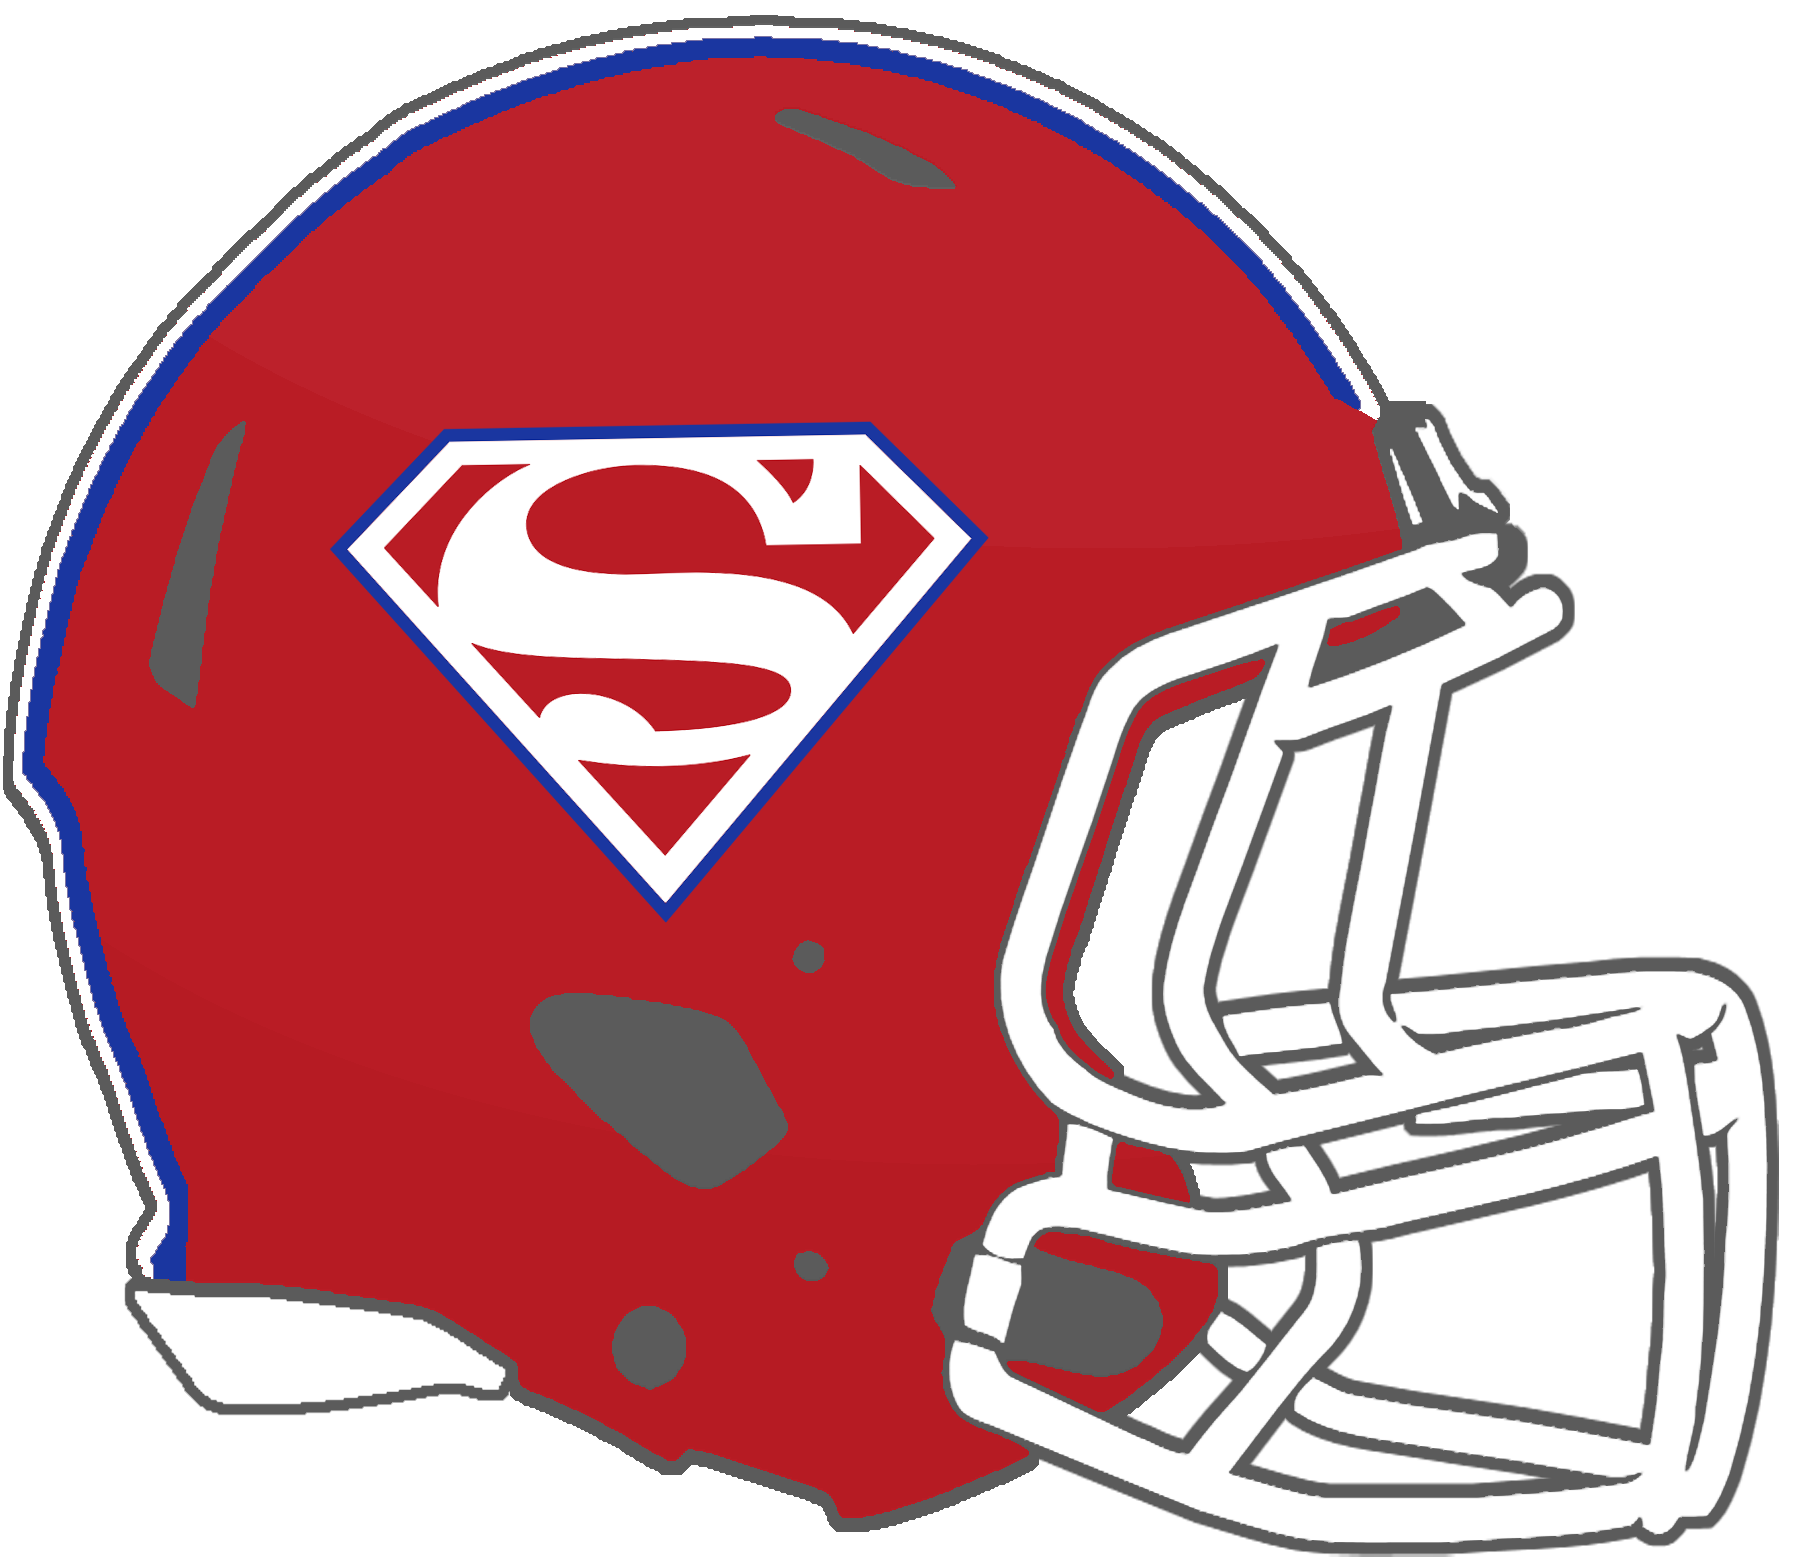 College football helmet clipart graphic library Mississippi High School Football Helmets: 3A graphic library